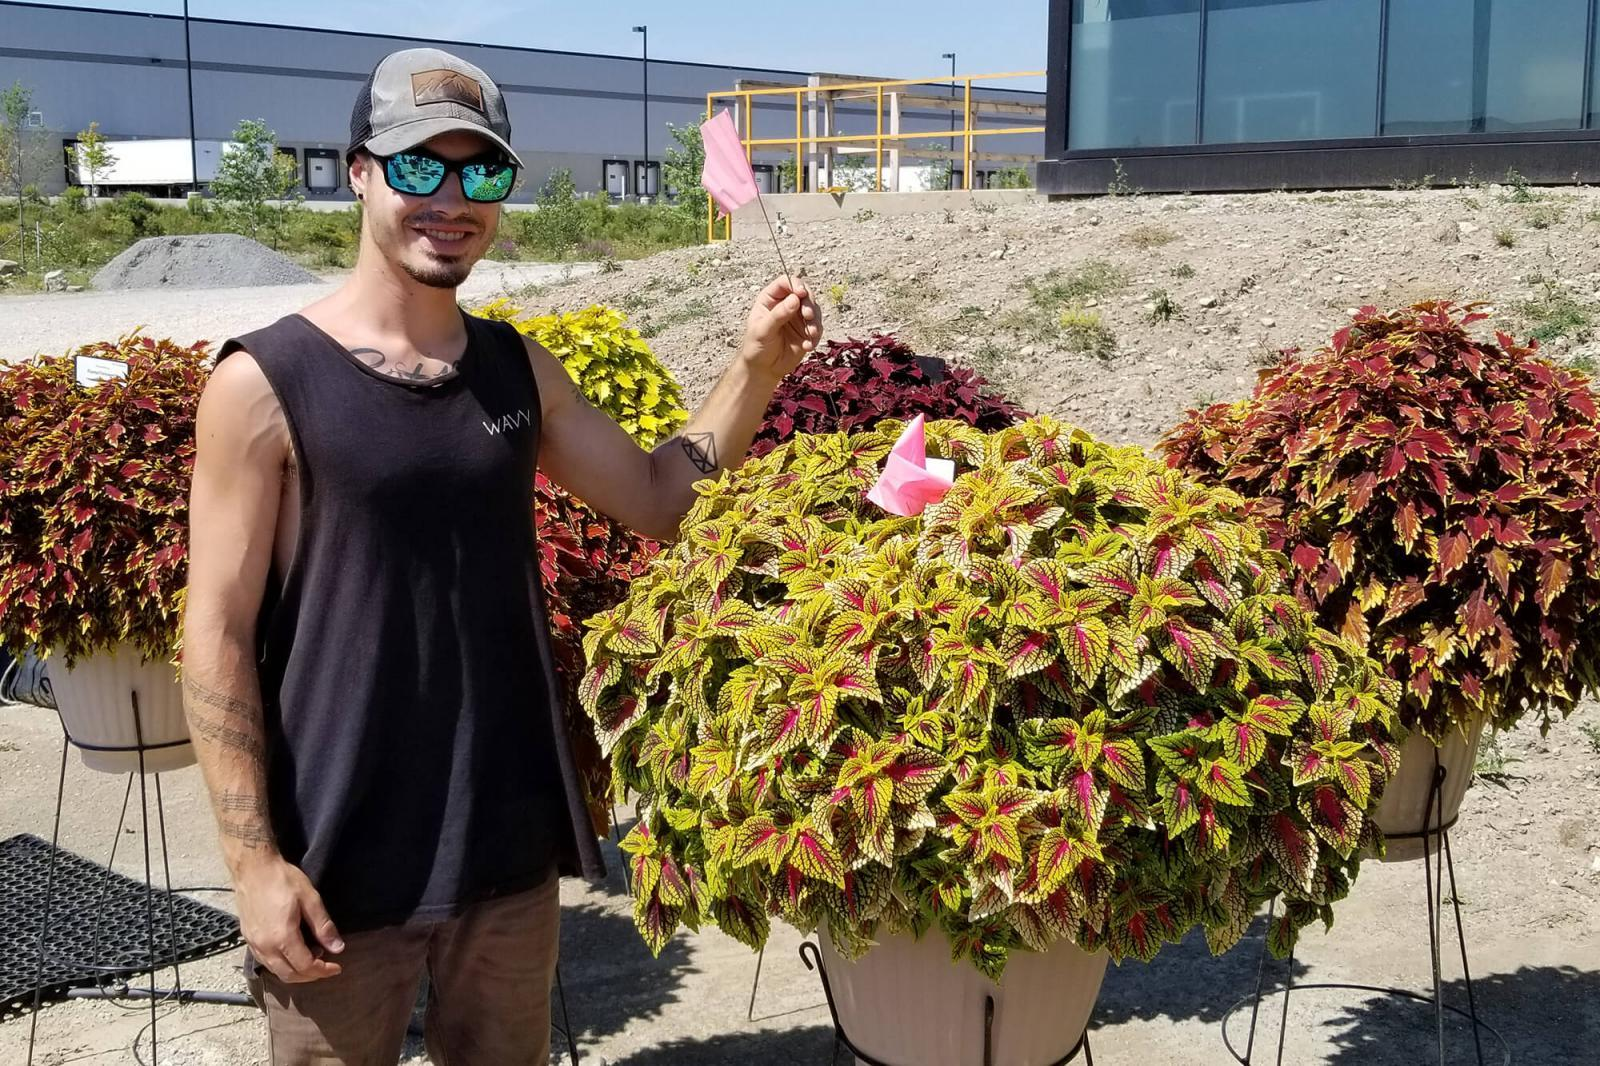 Davis Anders casts a vote for his favourite new plant at the University of Guelph's Trial Garden site at Landscape Ontario in Milton, Ont.